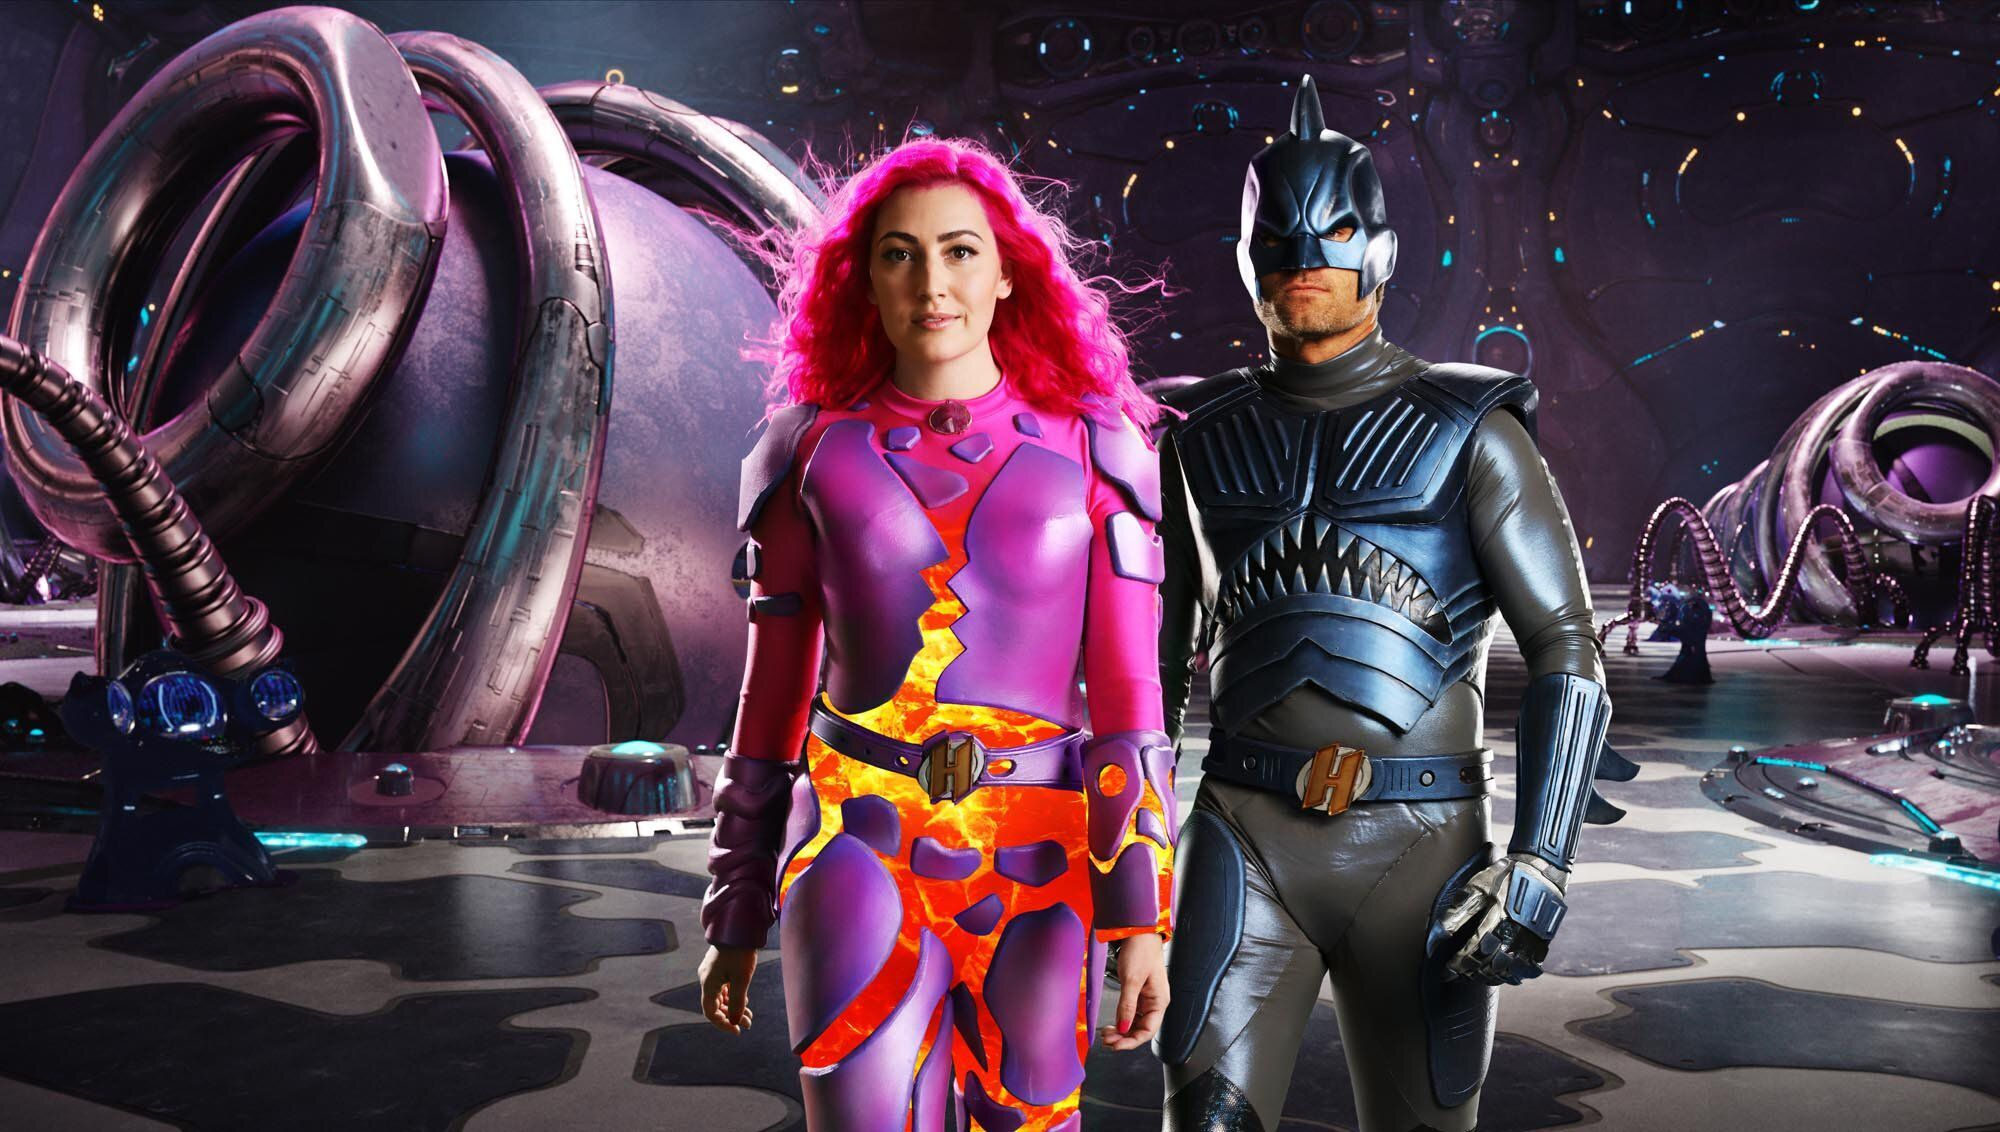 We Can Be Heroes Sharkboy et Lavagirl seront les parents dans le nouveau film de Robert Rodriguez